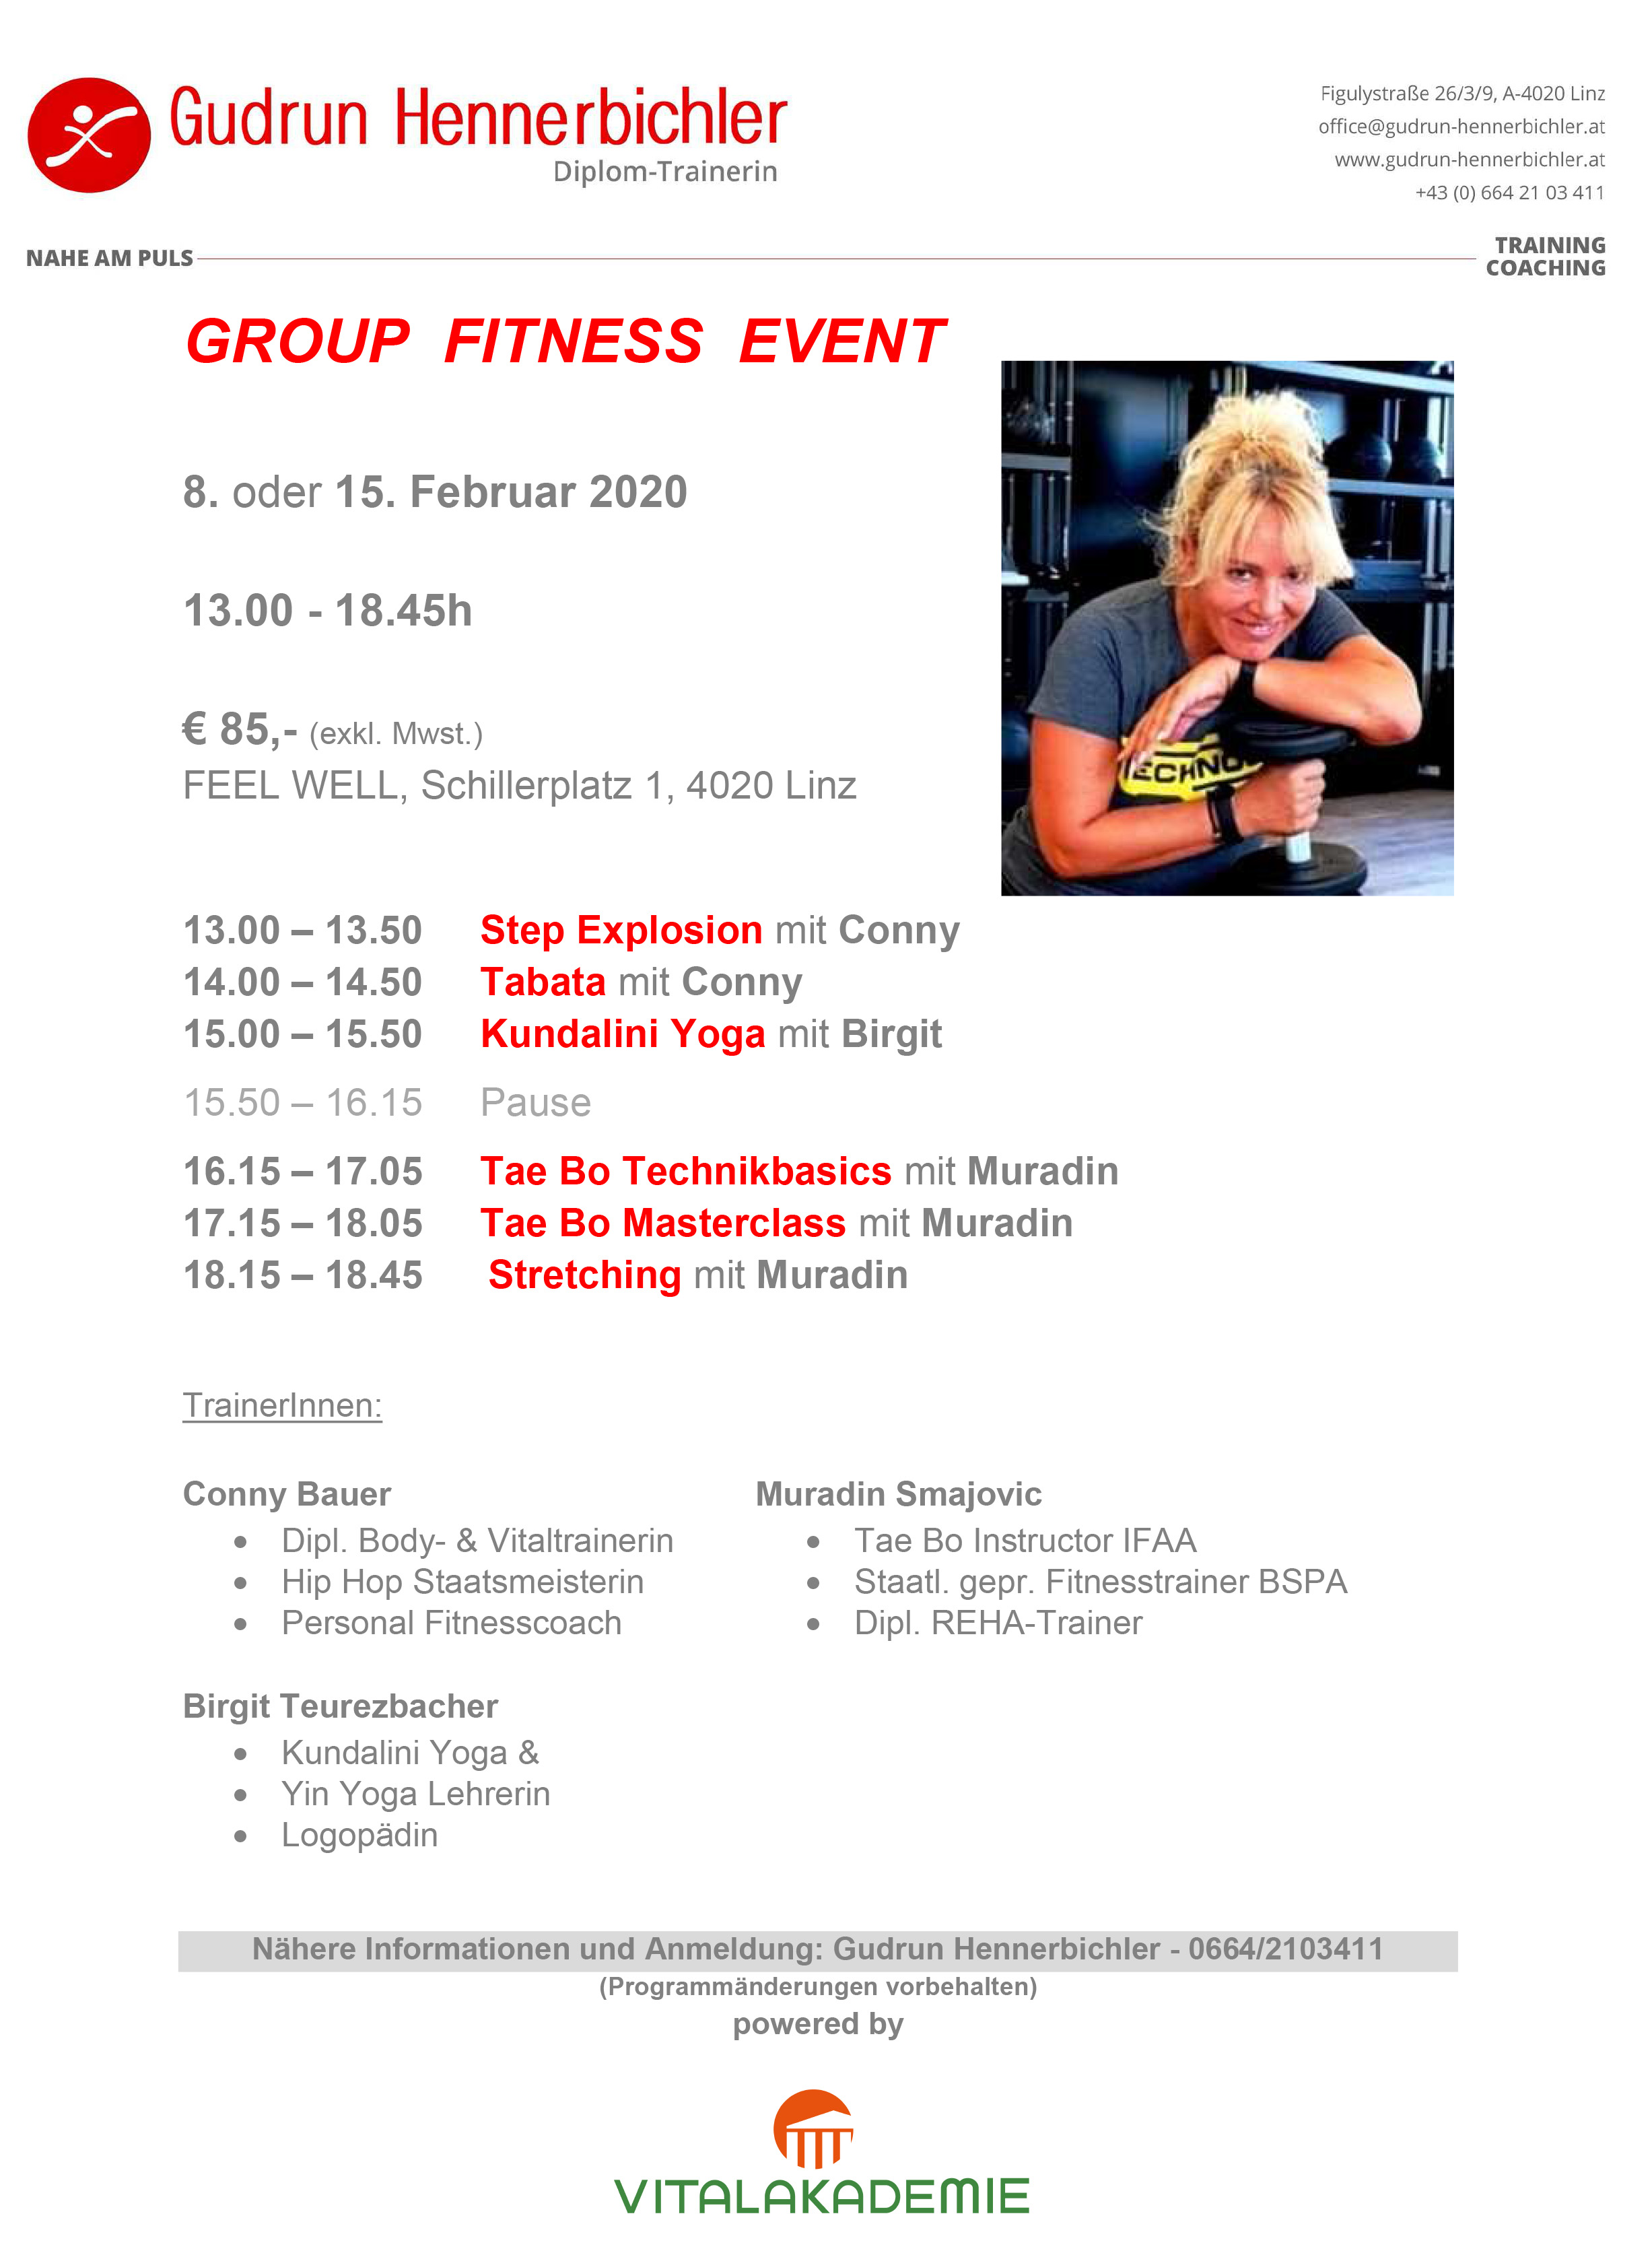 Group Fitness Event